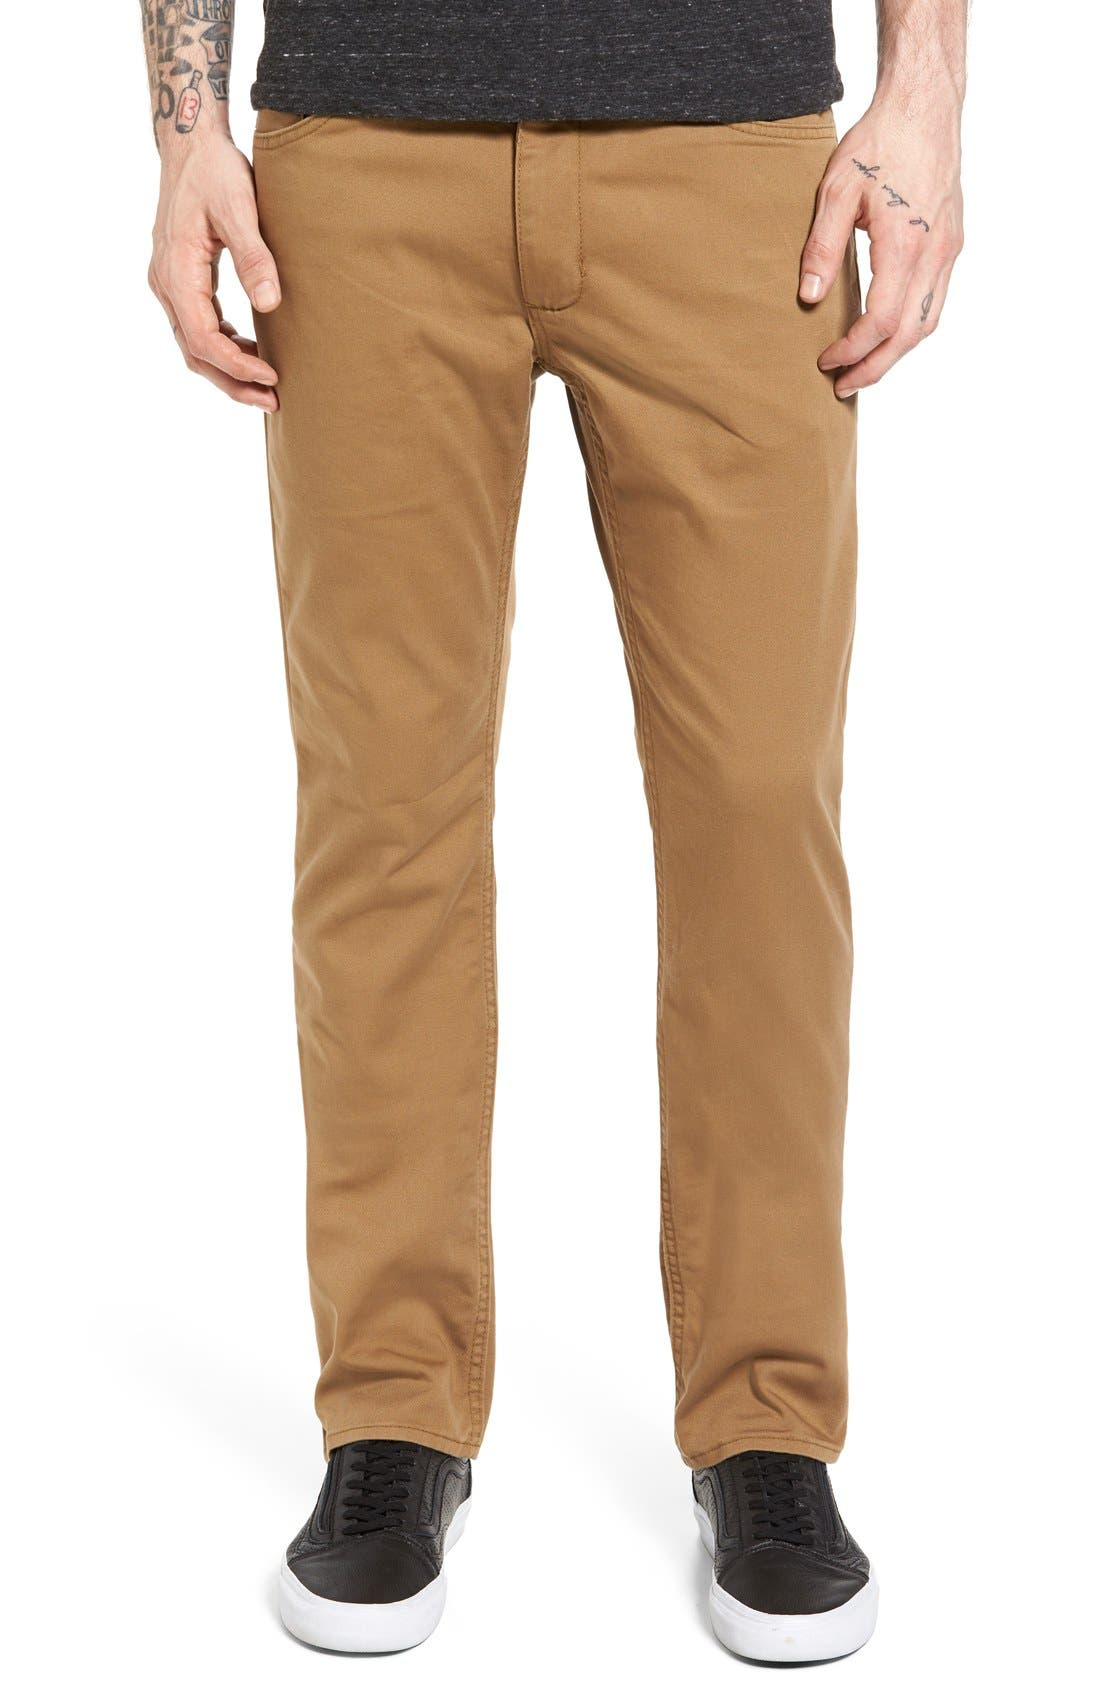 Alternate Image 1 Selected - Vans V56 Covina II Slim Fit Pants